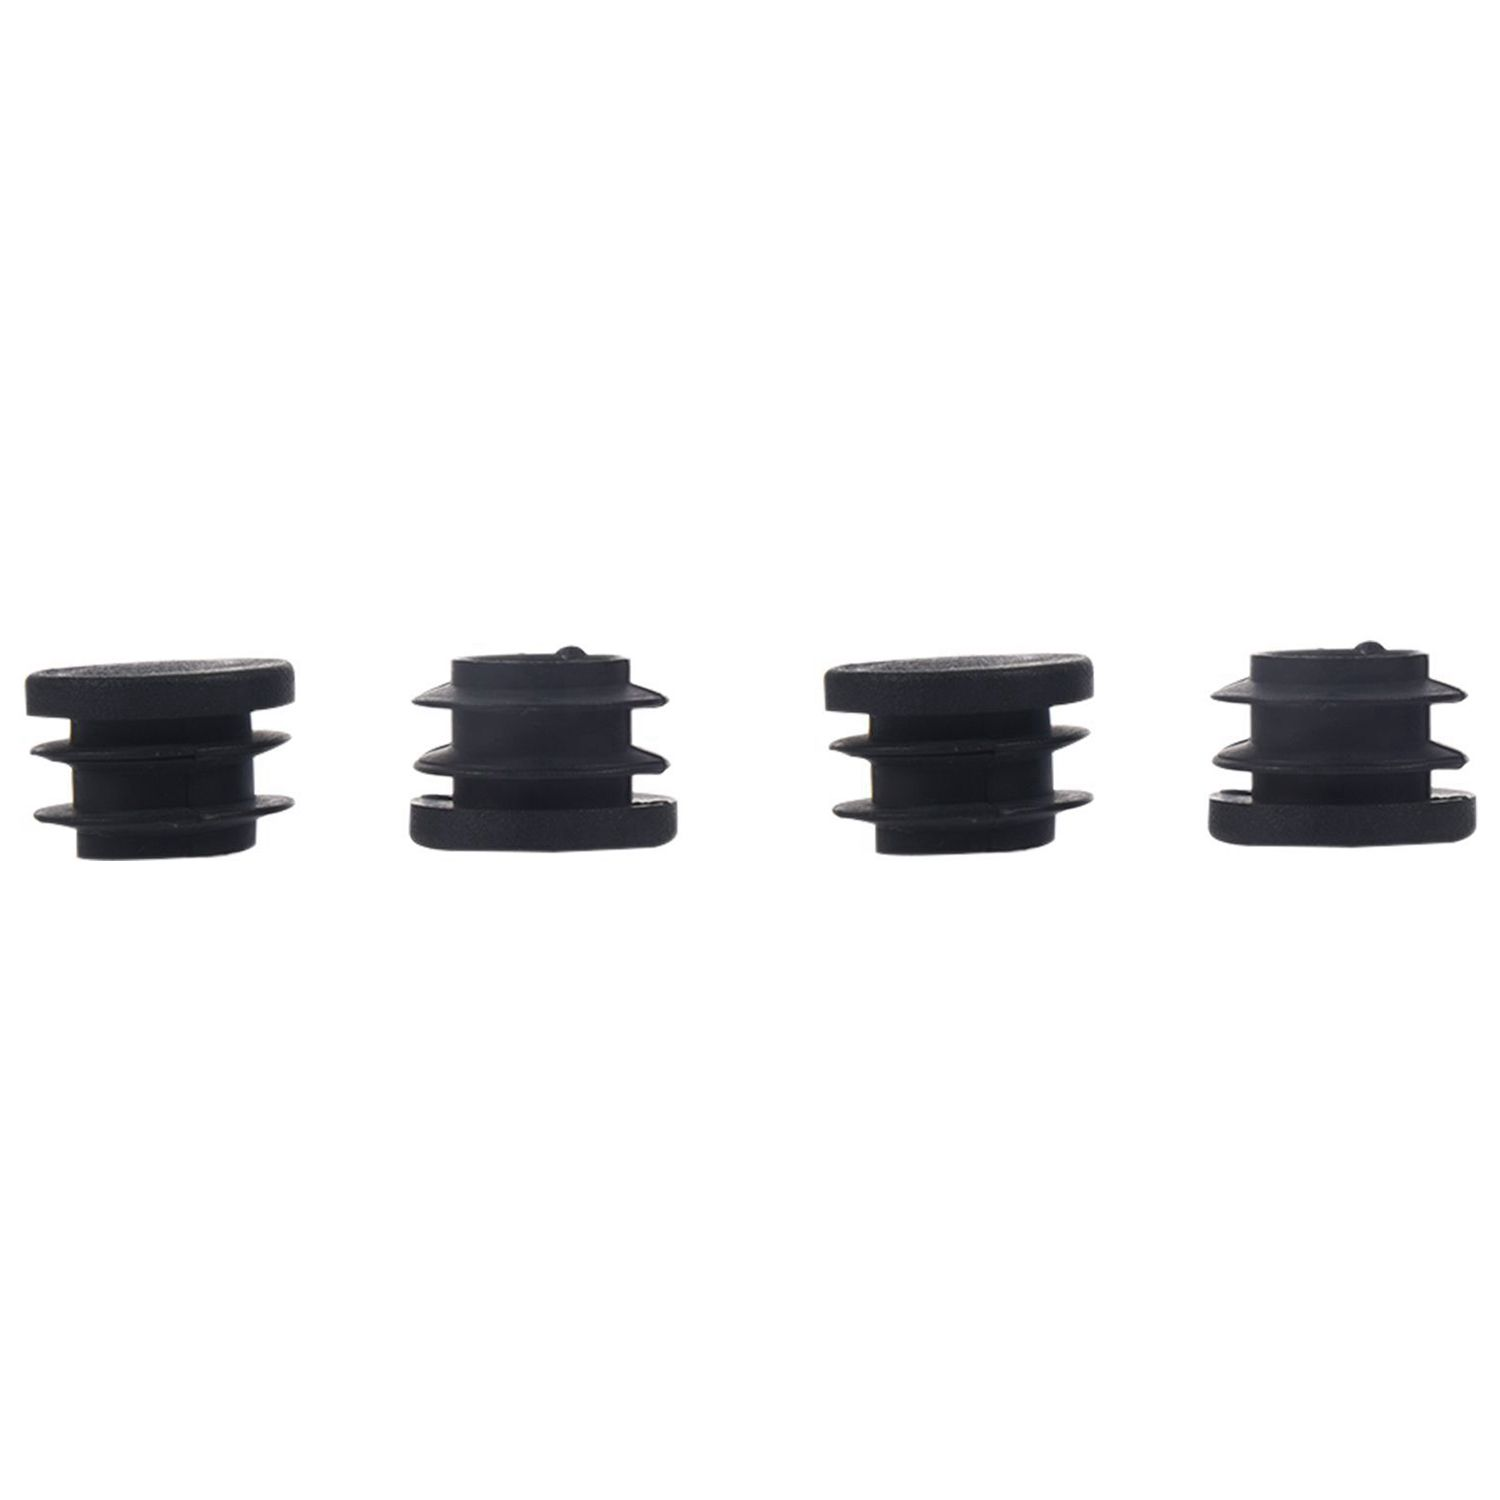 Hot Sale Blanking End Caps Round Tube Insert Cover 19mm Dia 20 Pcs Black